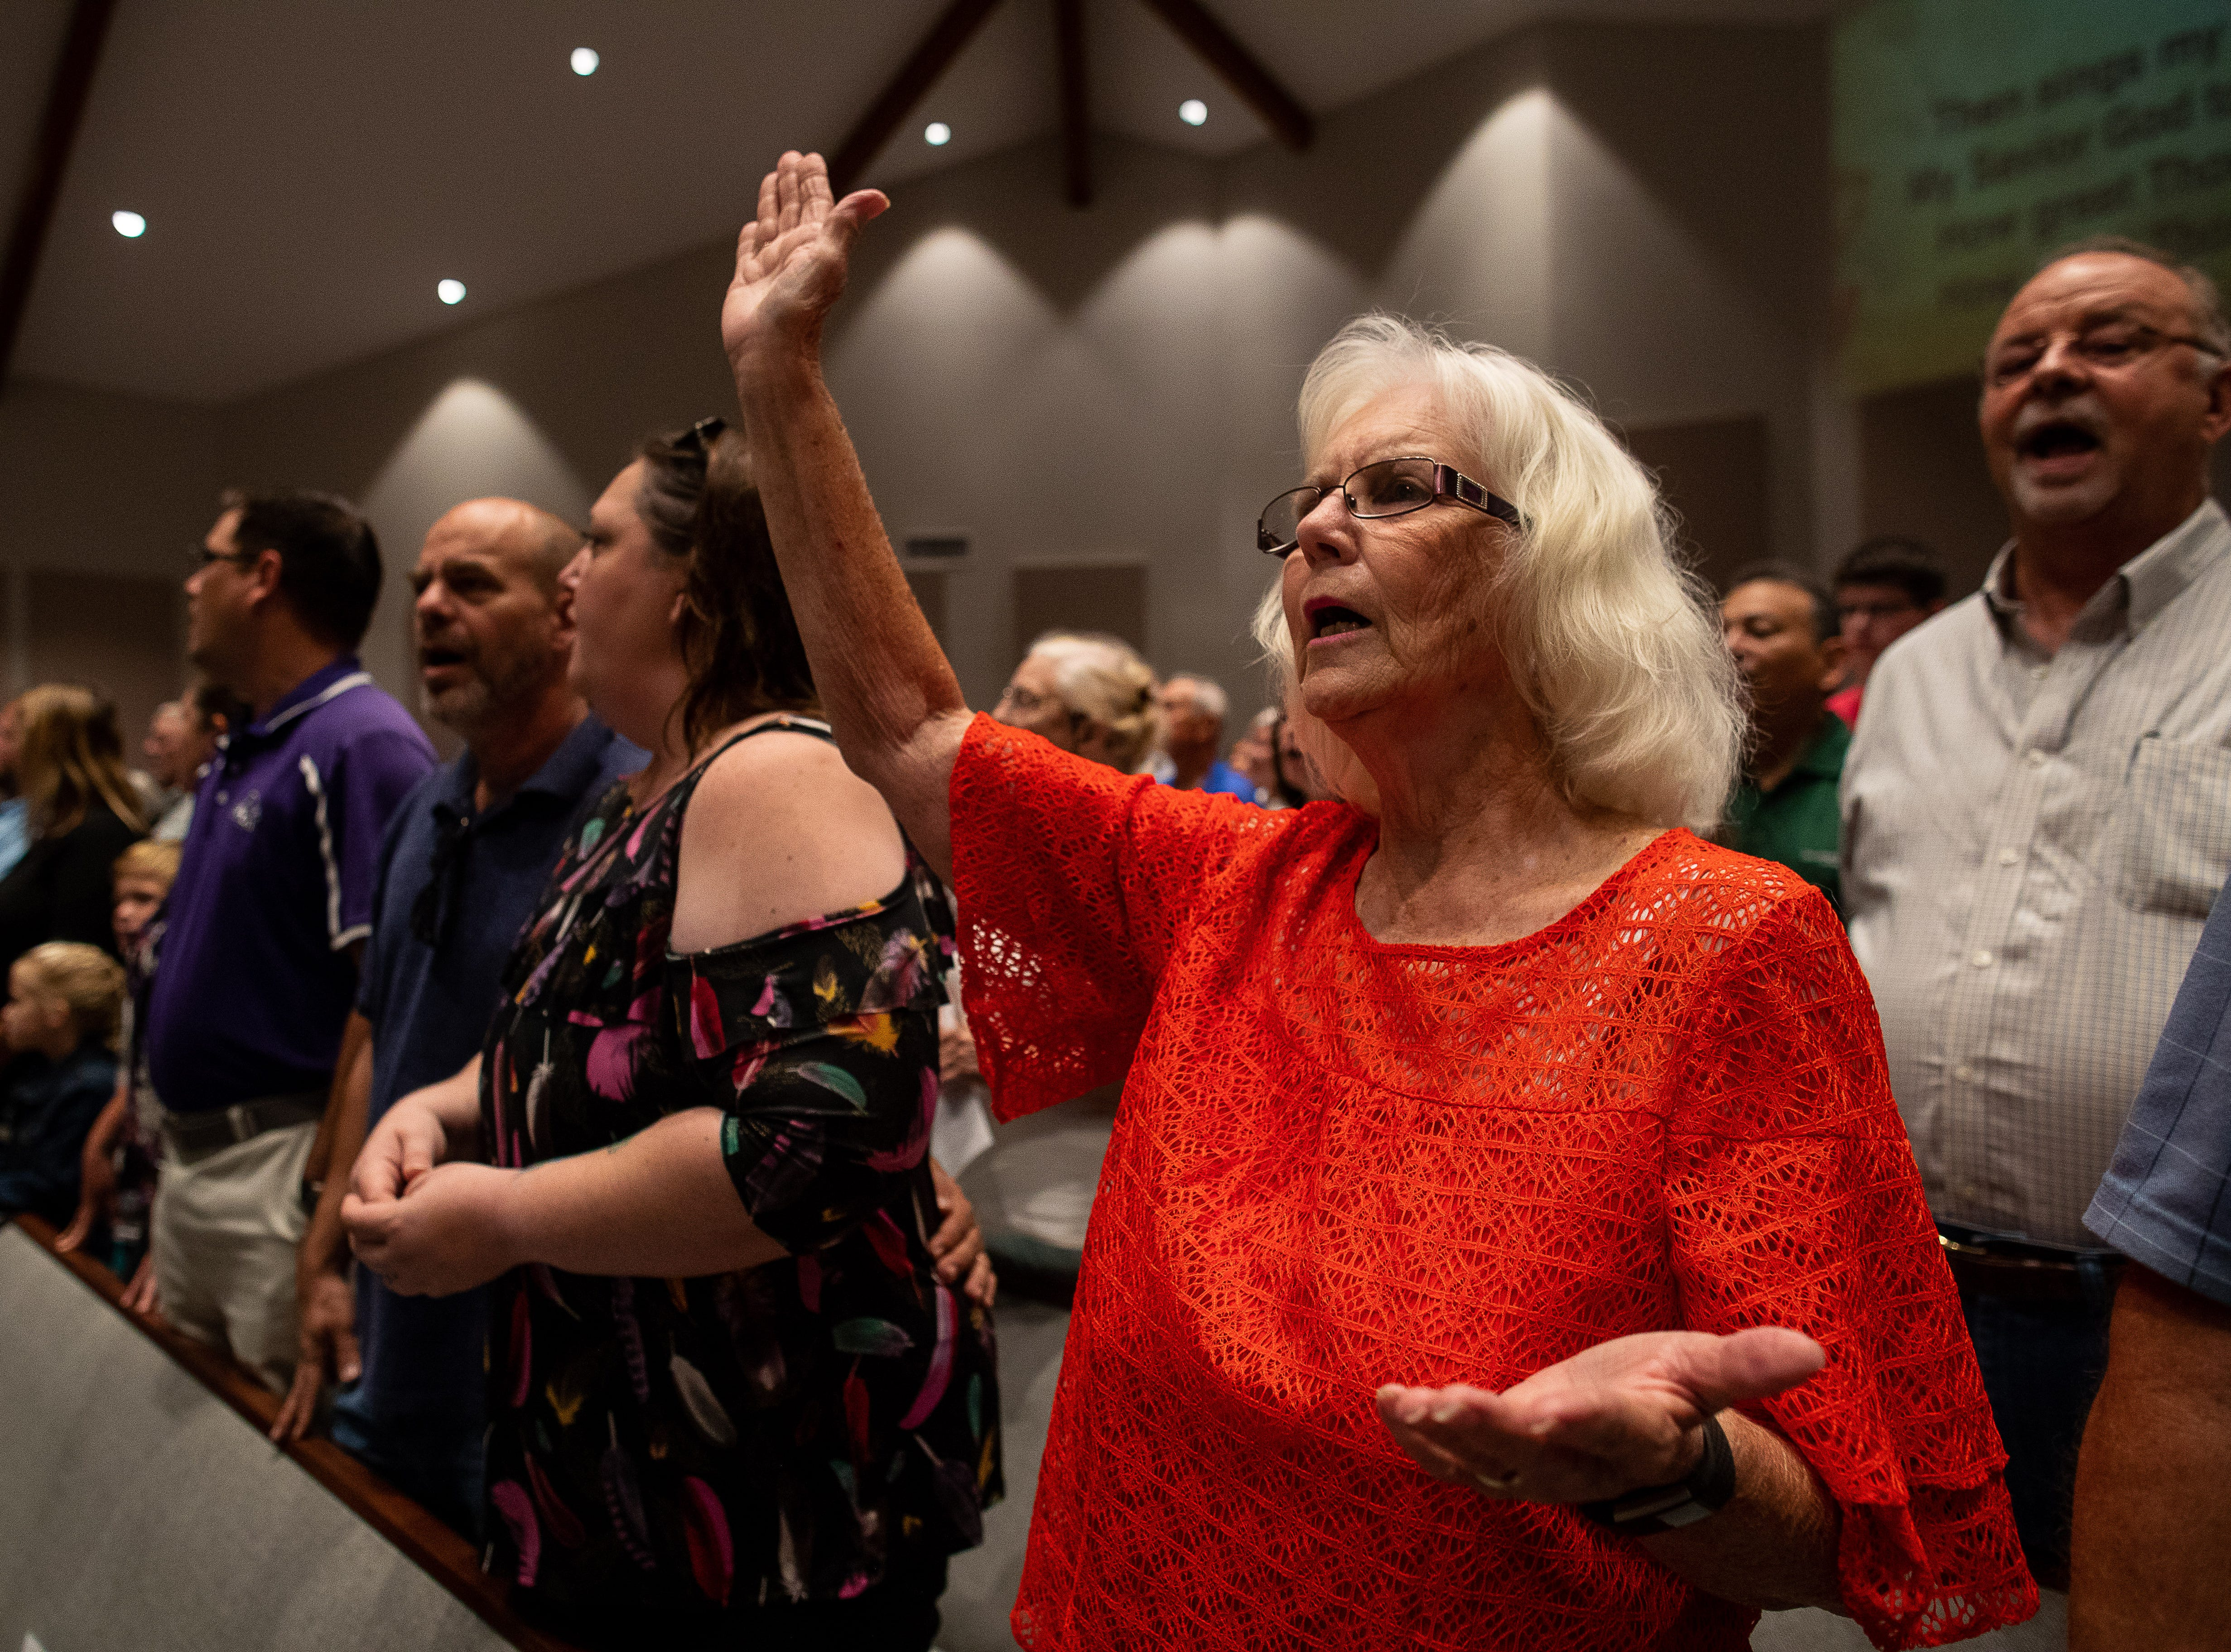 Members of First Baptist Church of Rockport pray during a Hurricane Harvey anniversary service on Sunday, Aug. 26, 2018.